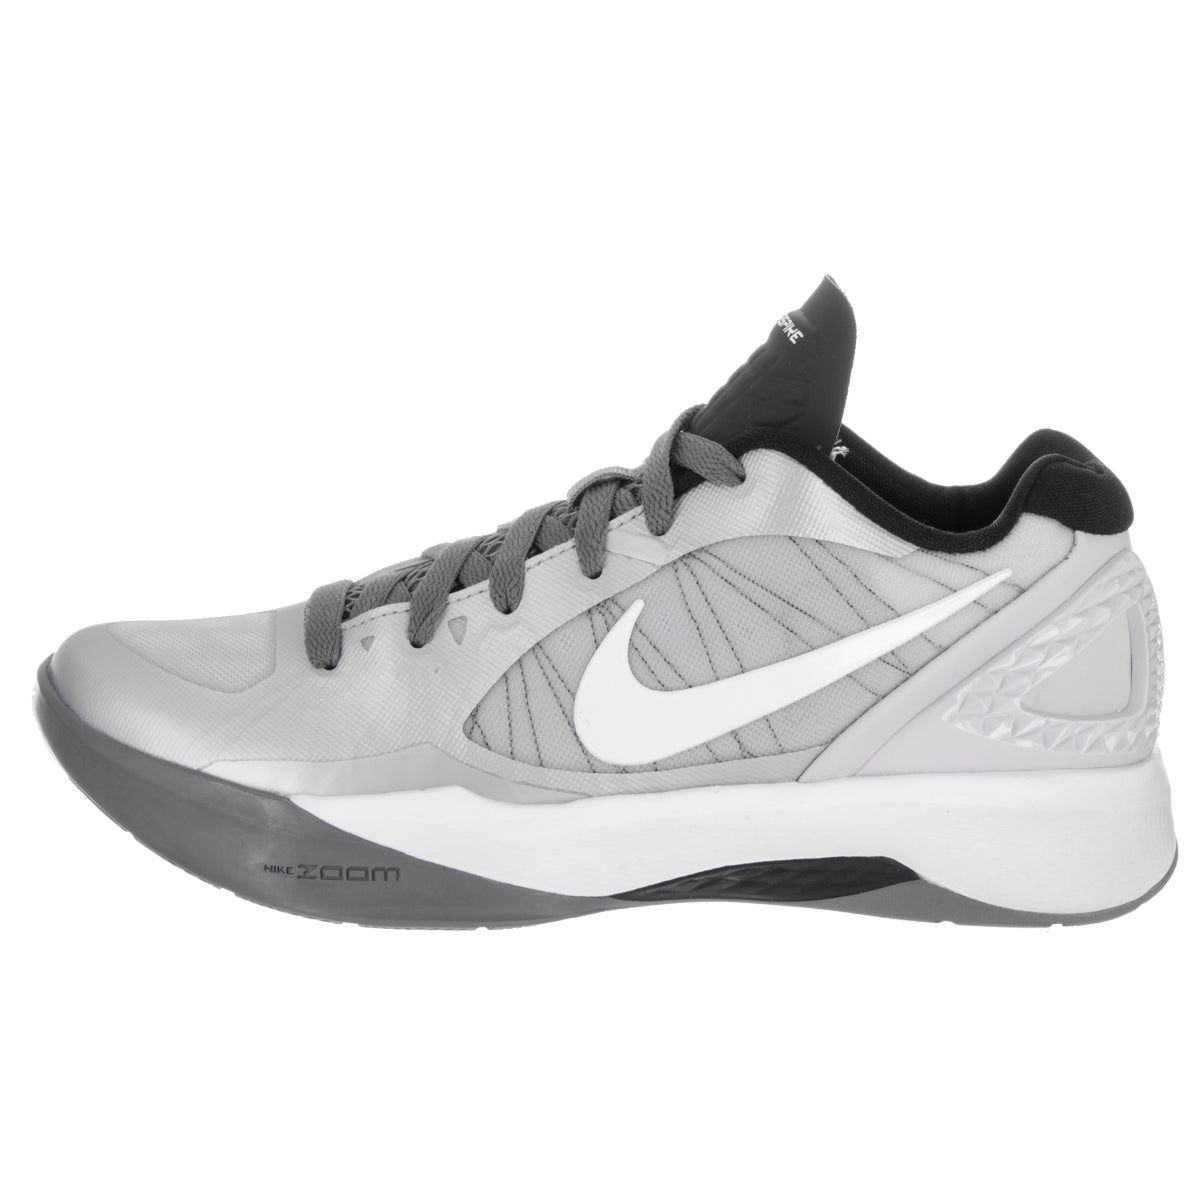 sports shoes f1f85 82798 Shop Nike Women s Volley Zoom Hyperspike Volleyball Shoes - Free Shipping  Today - Overstock - 13746886